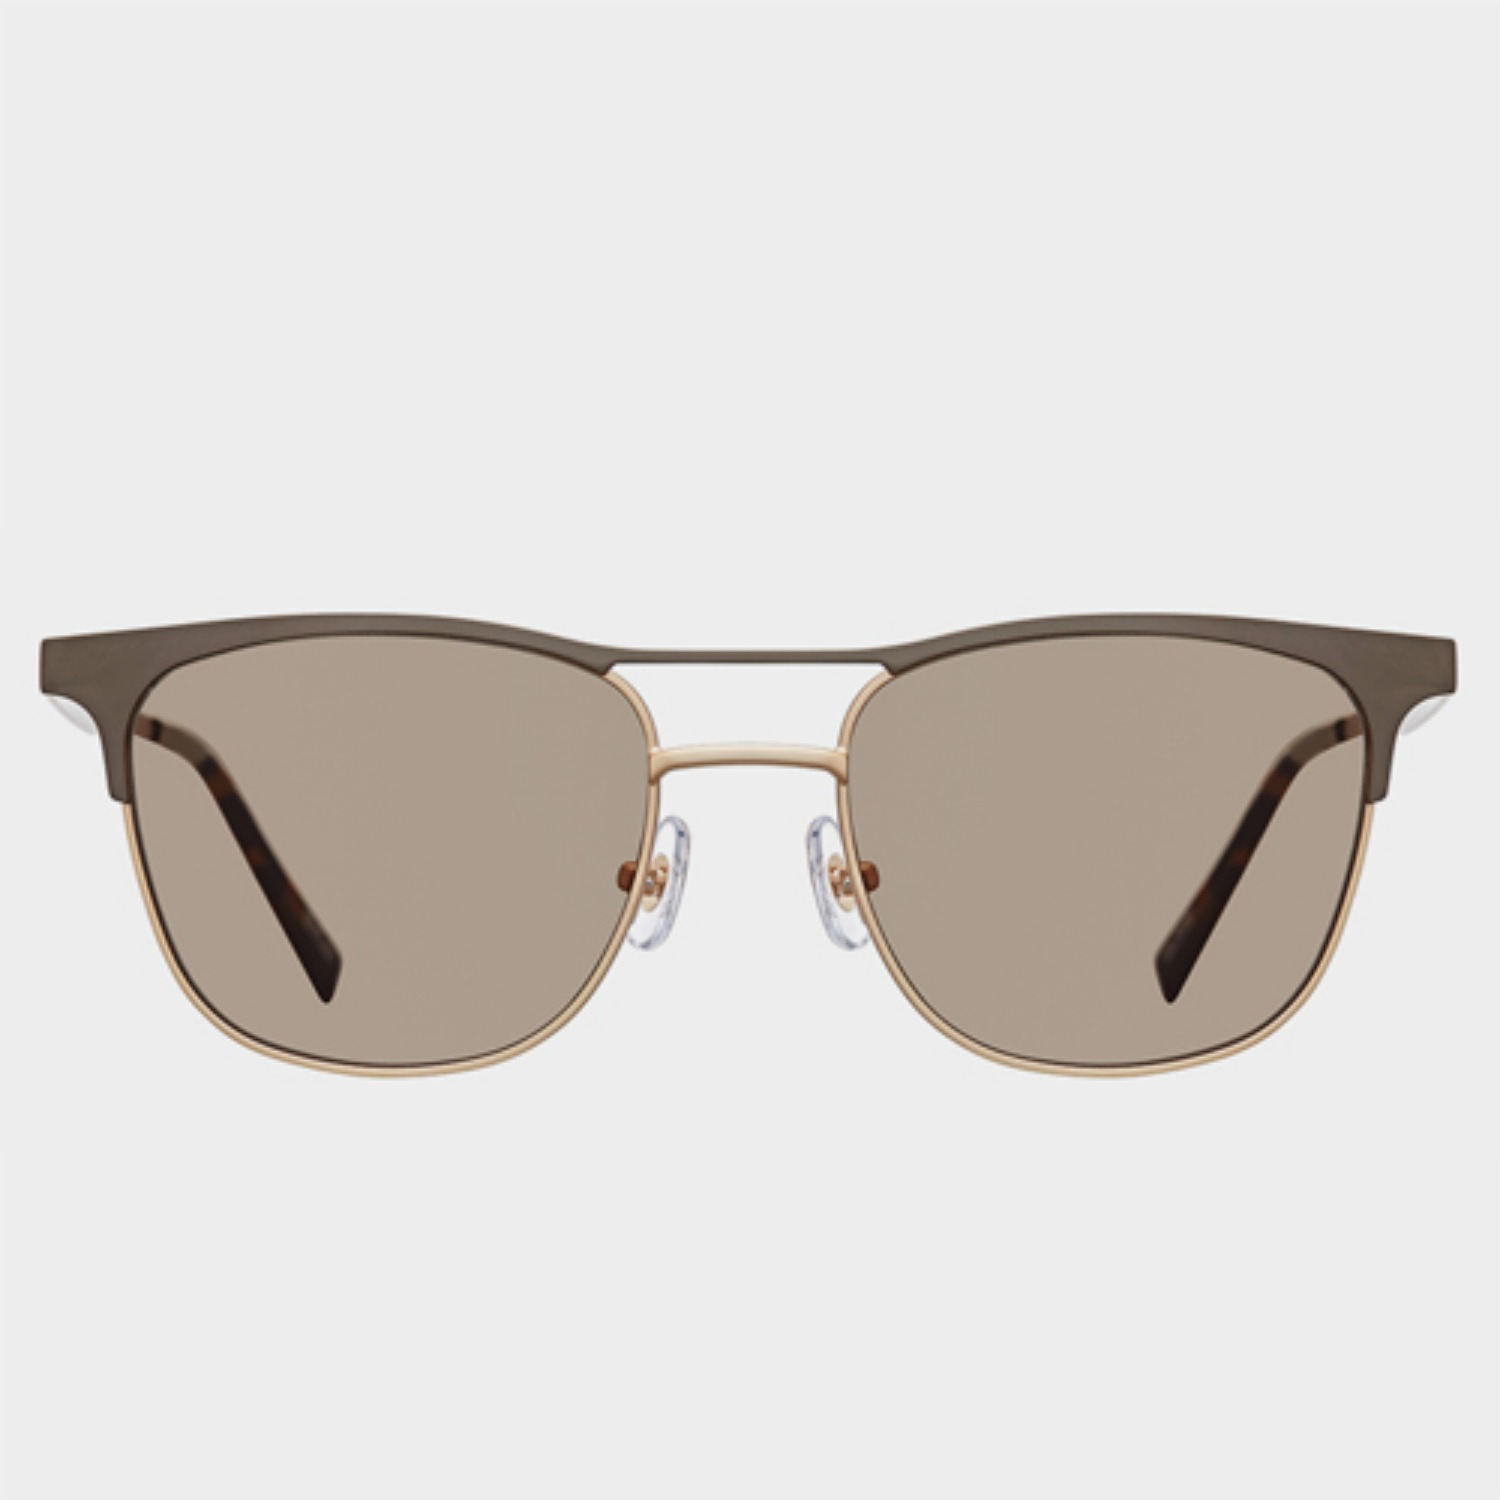 스틸러 CRASH STL11 (Brown Tint Lens)